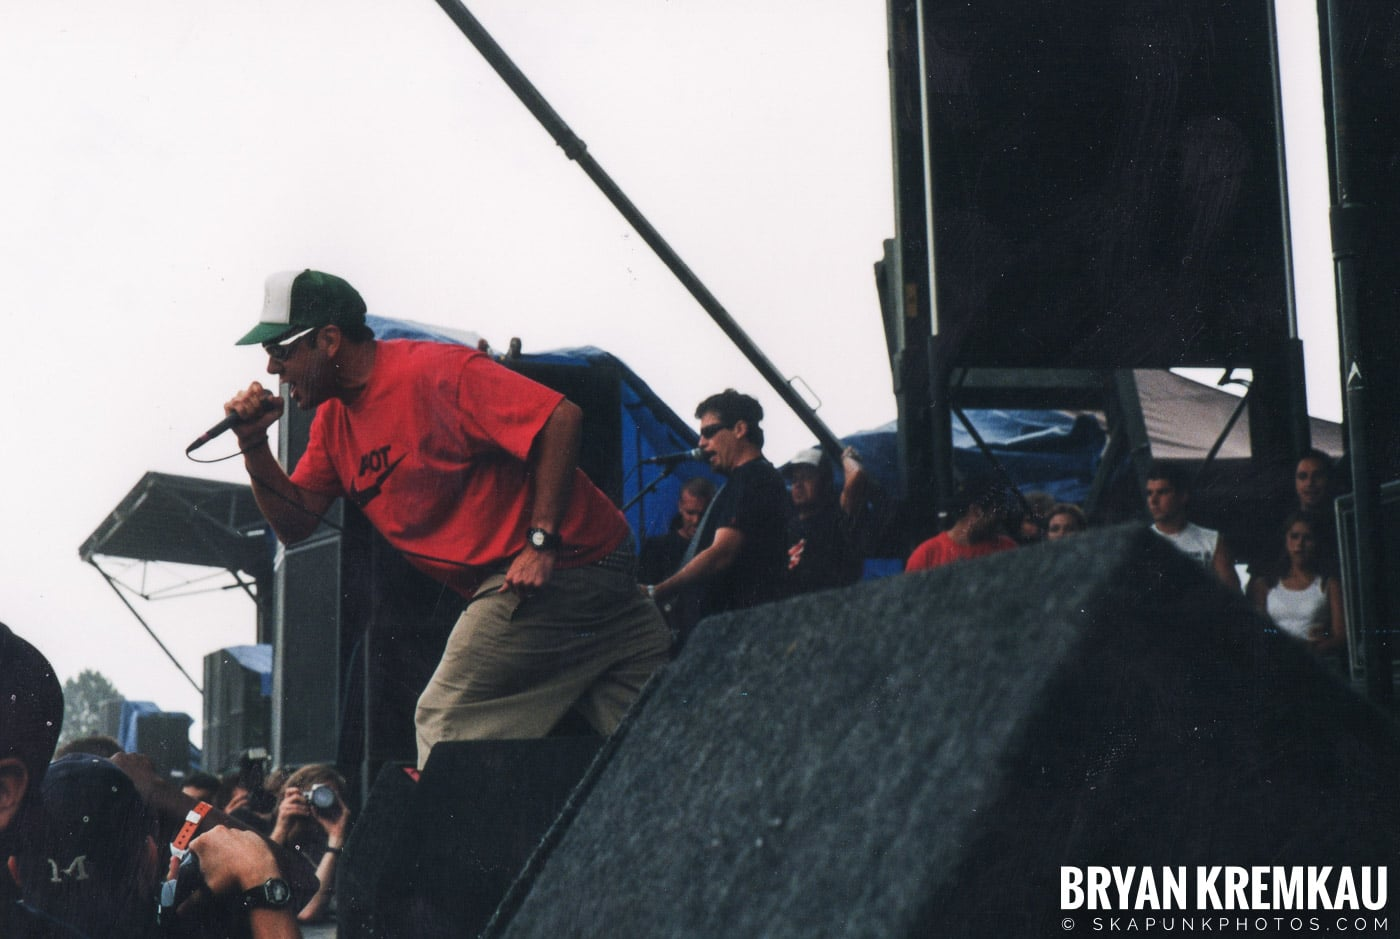 Pennywise @ Vans Warped Tour, Randall's Island, NYC - 8.4.01 (2)